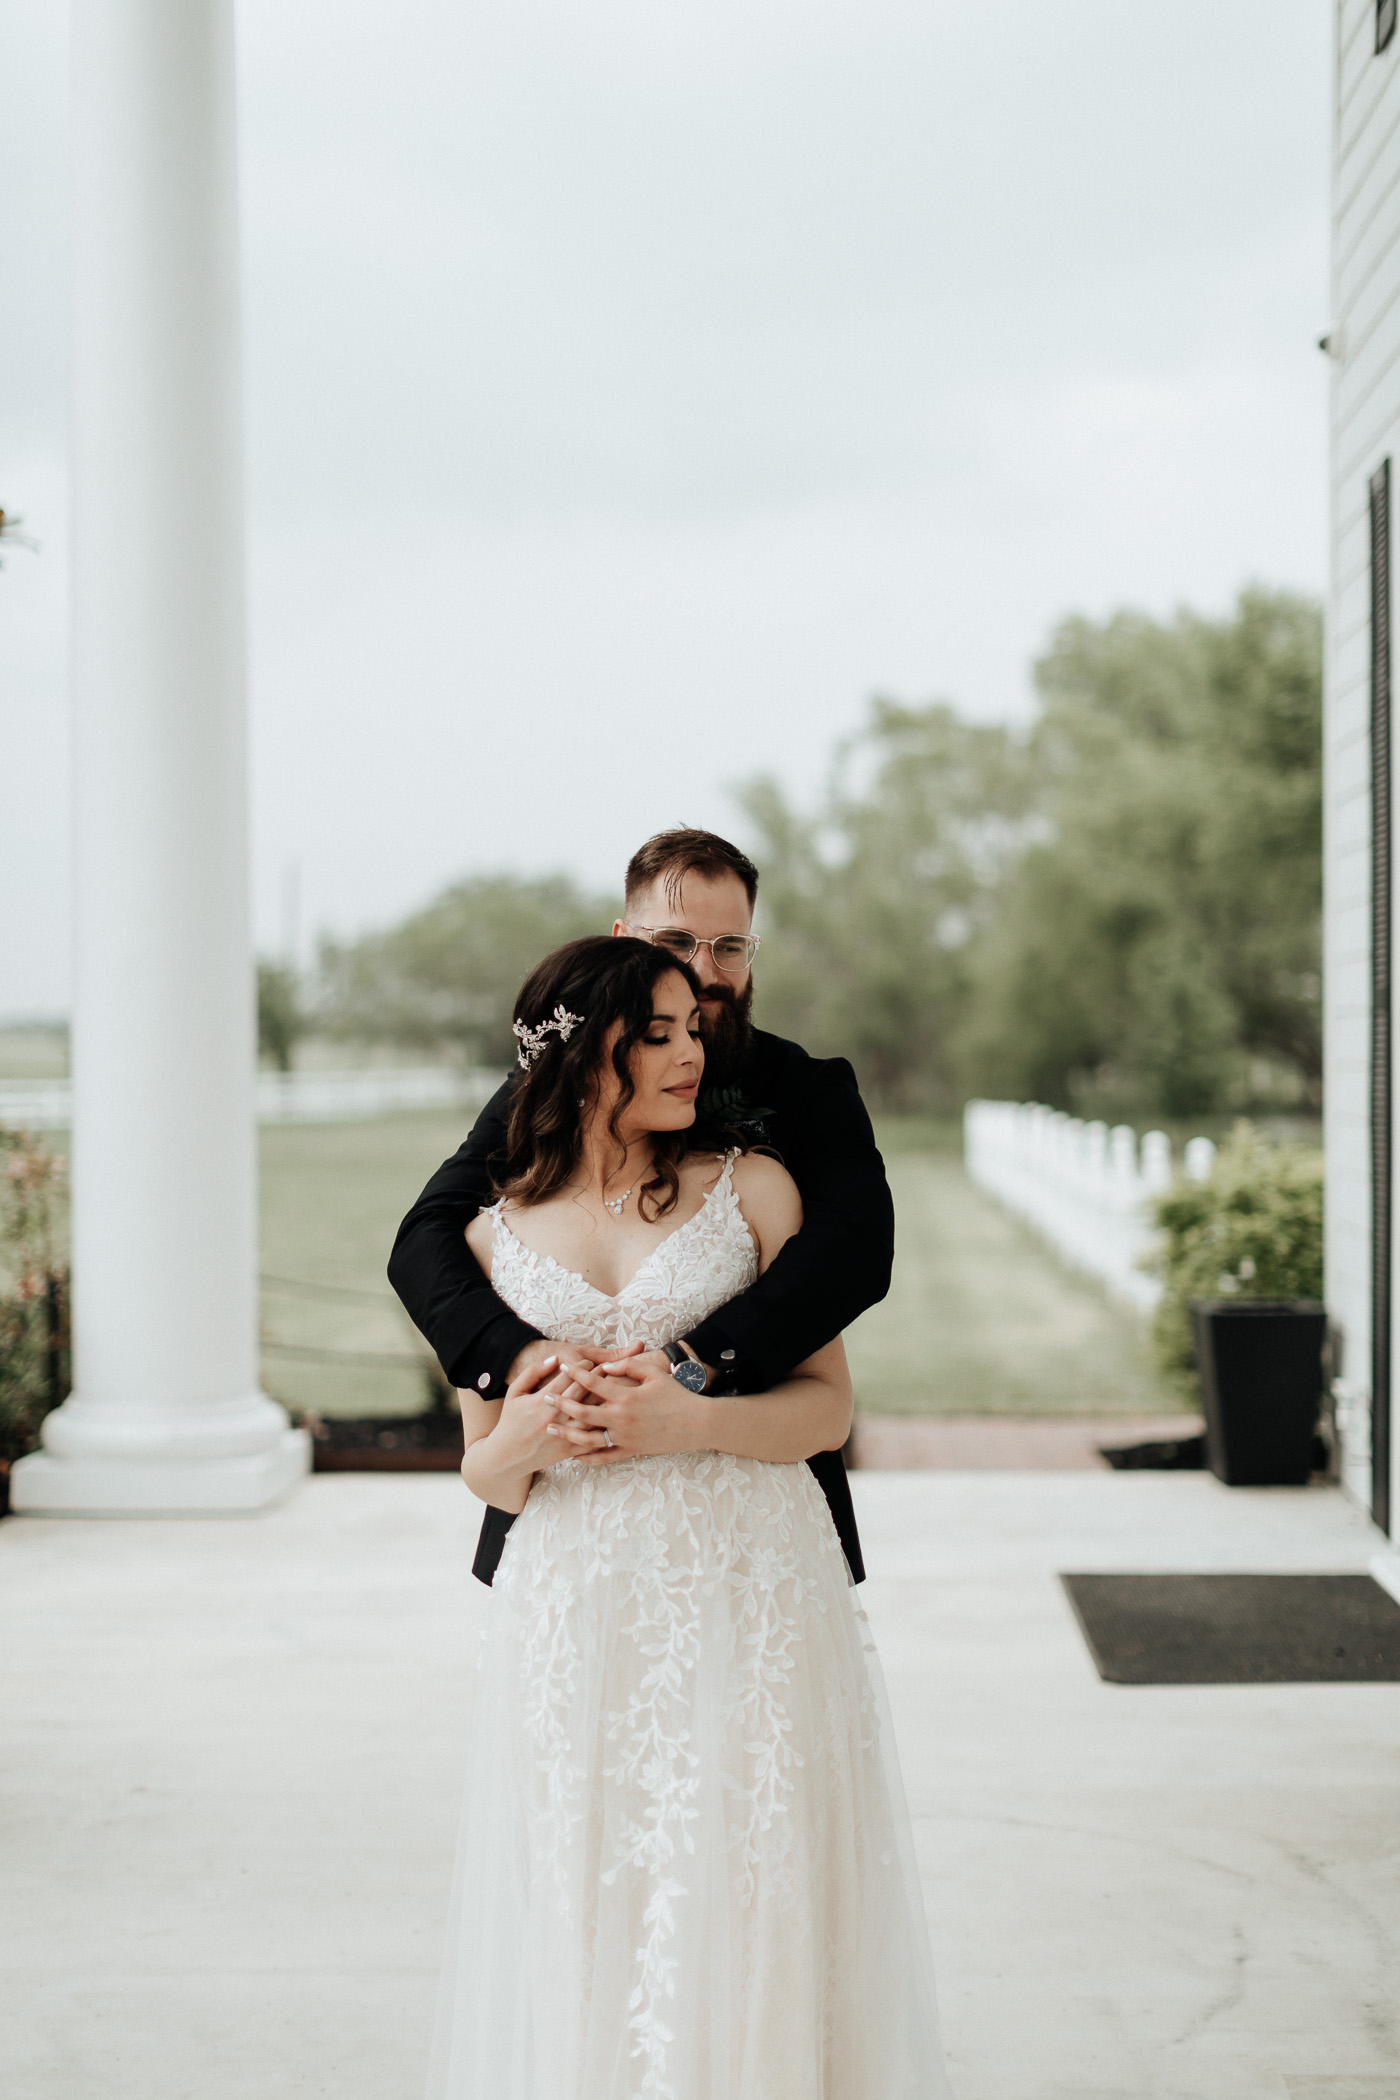 Bride and groom taking wedding portraits in DFW